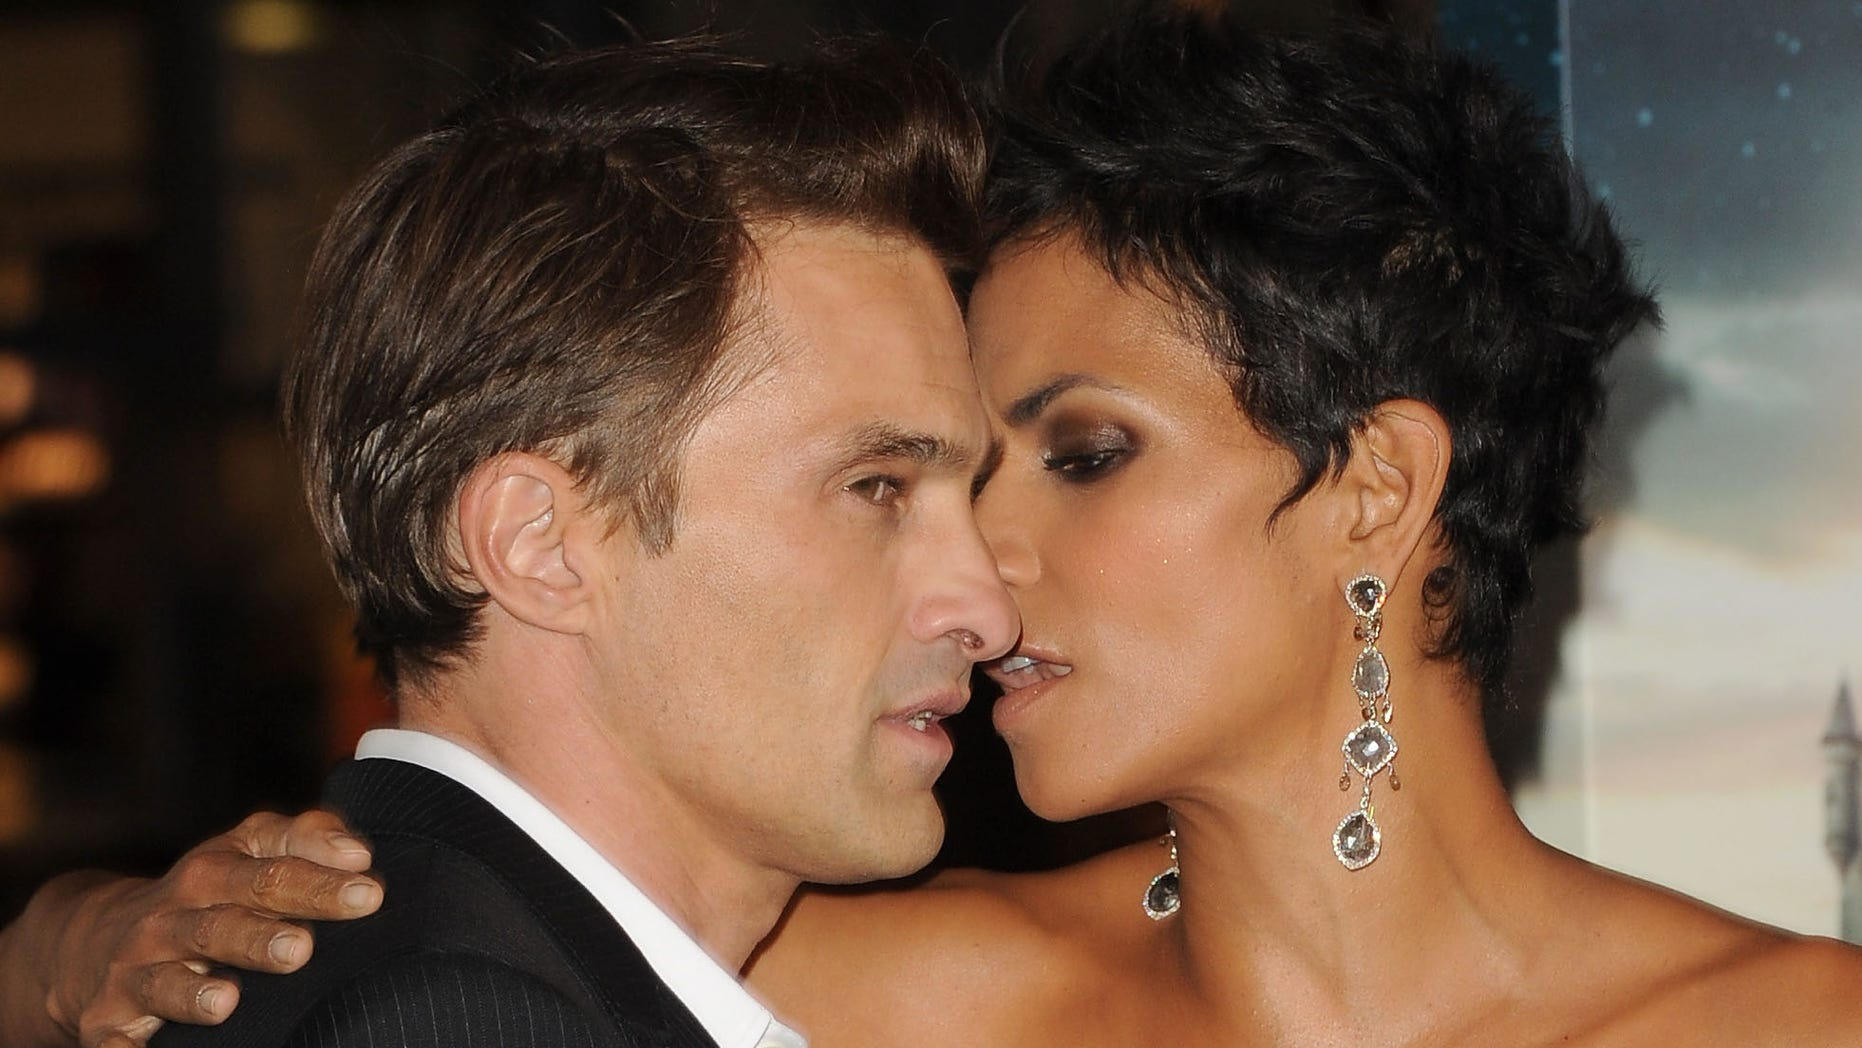 HOLLYWOOD, CA - OCTOBER 24:  Actors Olivier Martinez and Halle Berry arrive at Warner Bros. Pictures' 'Cloud Atlas' premiere at Grauman's Chinese Theatre on October 24, 2012 in Hollywood, California.  (Photo by Jason Merritt/Getty Images)